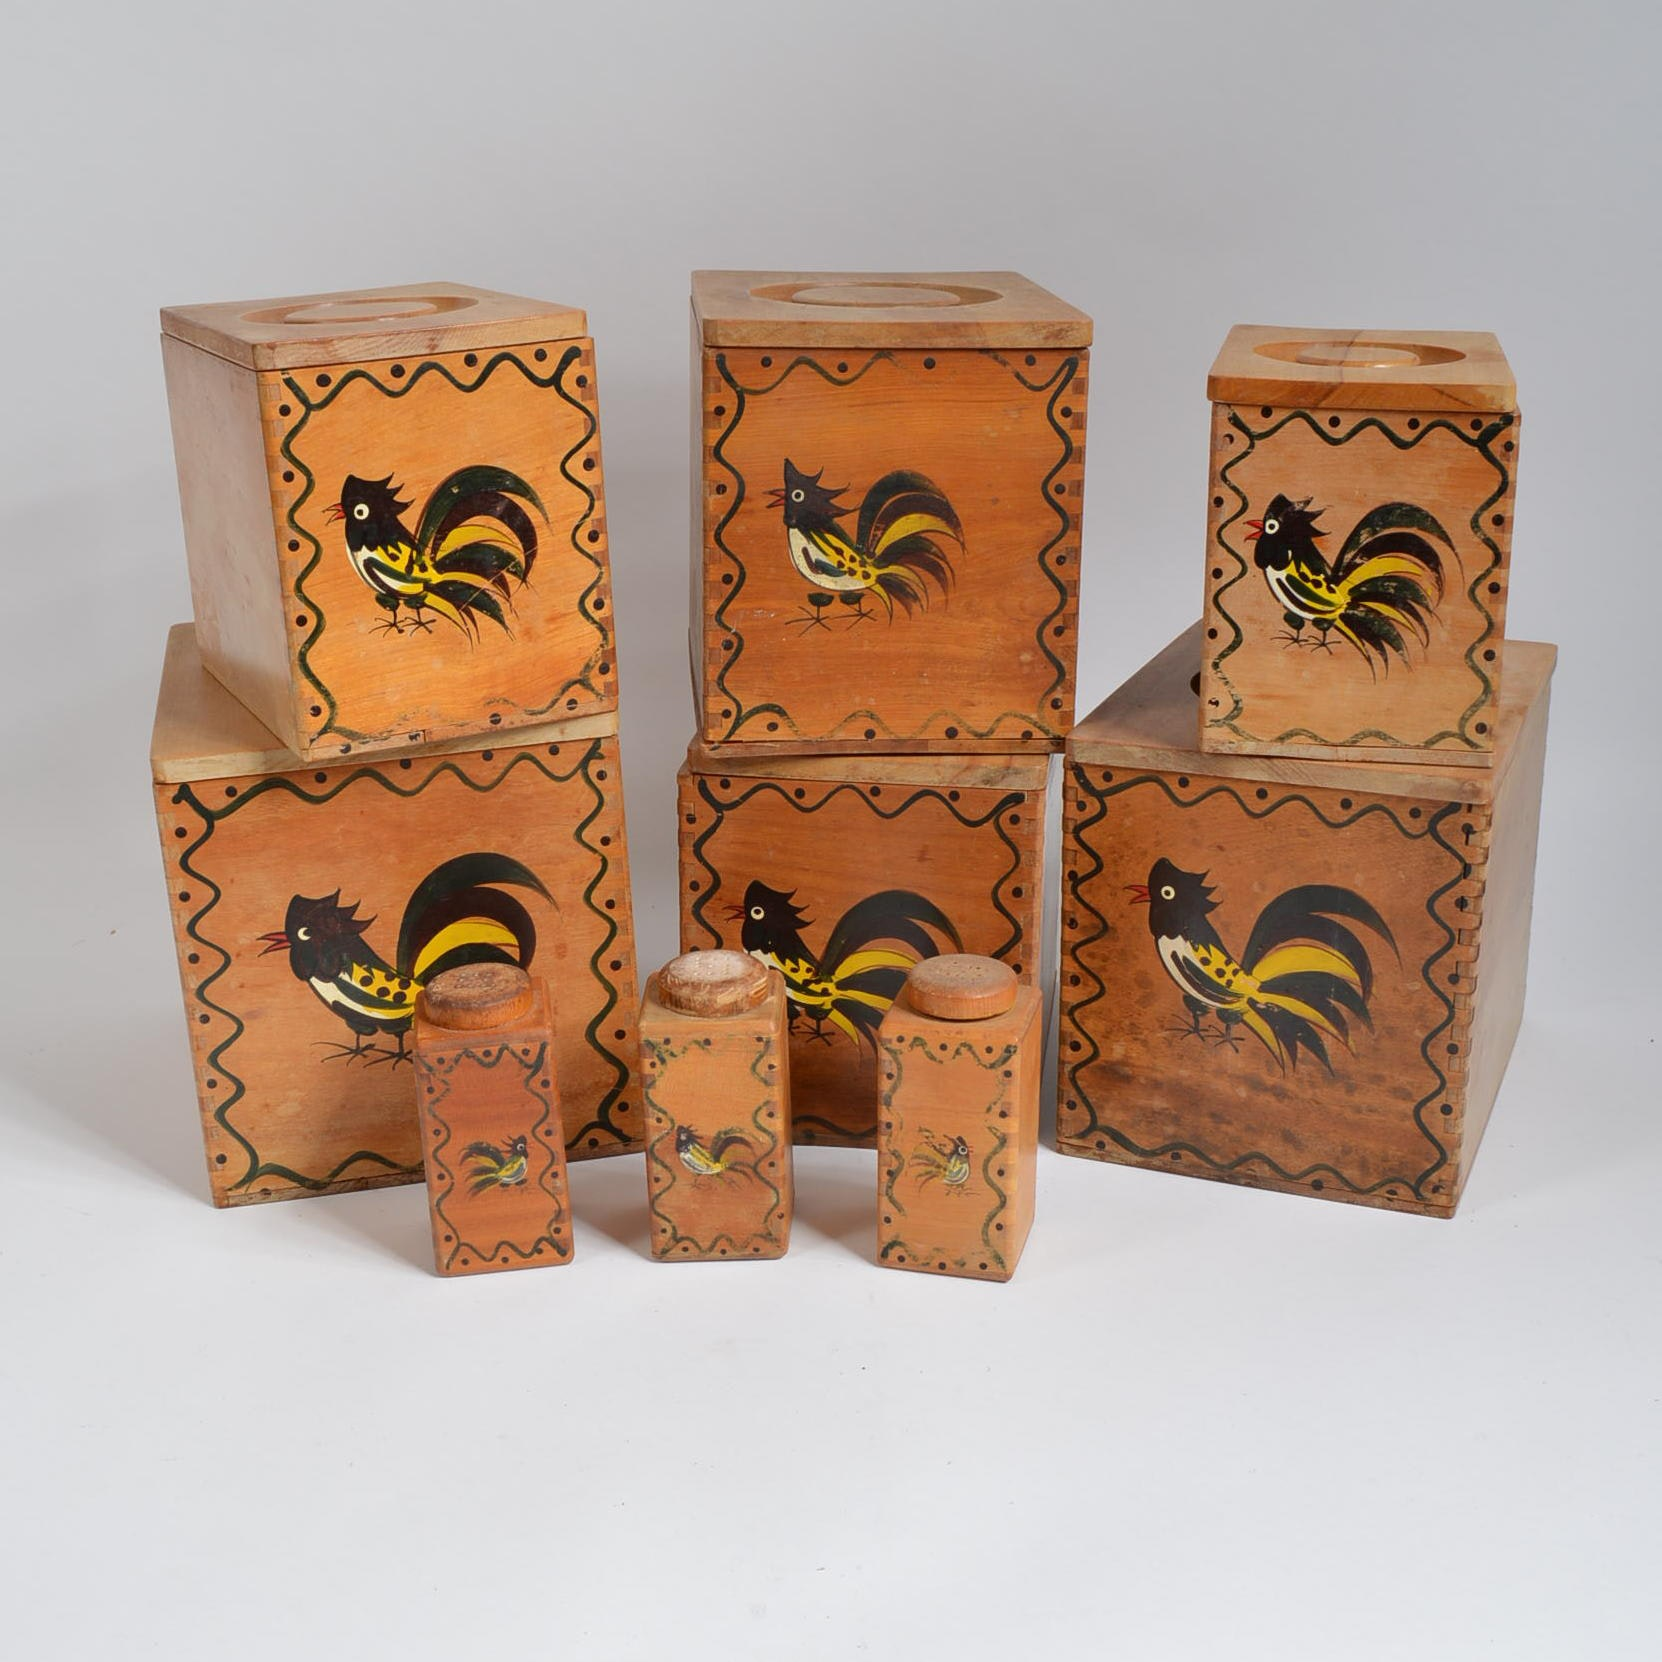 Wooden Rooster Boxes